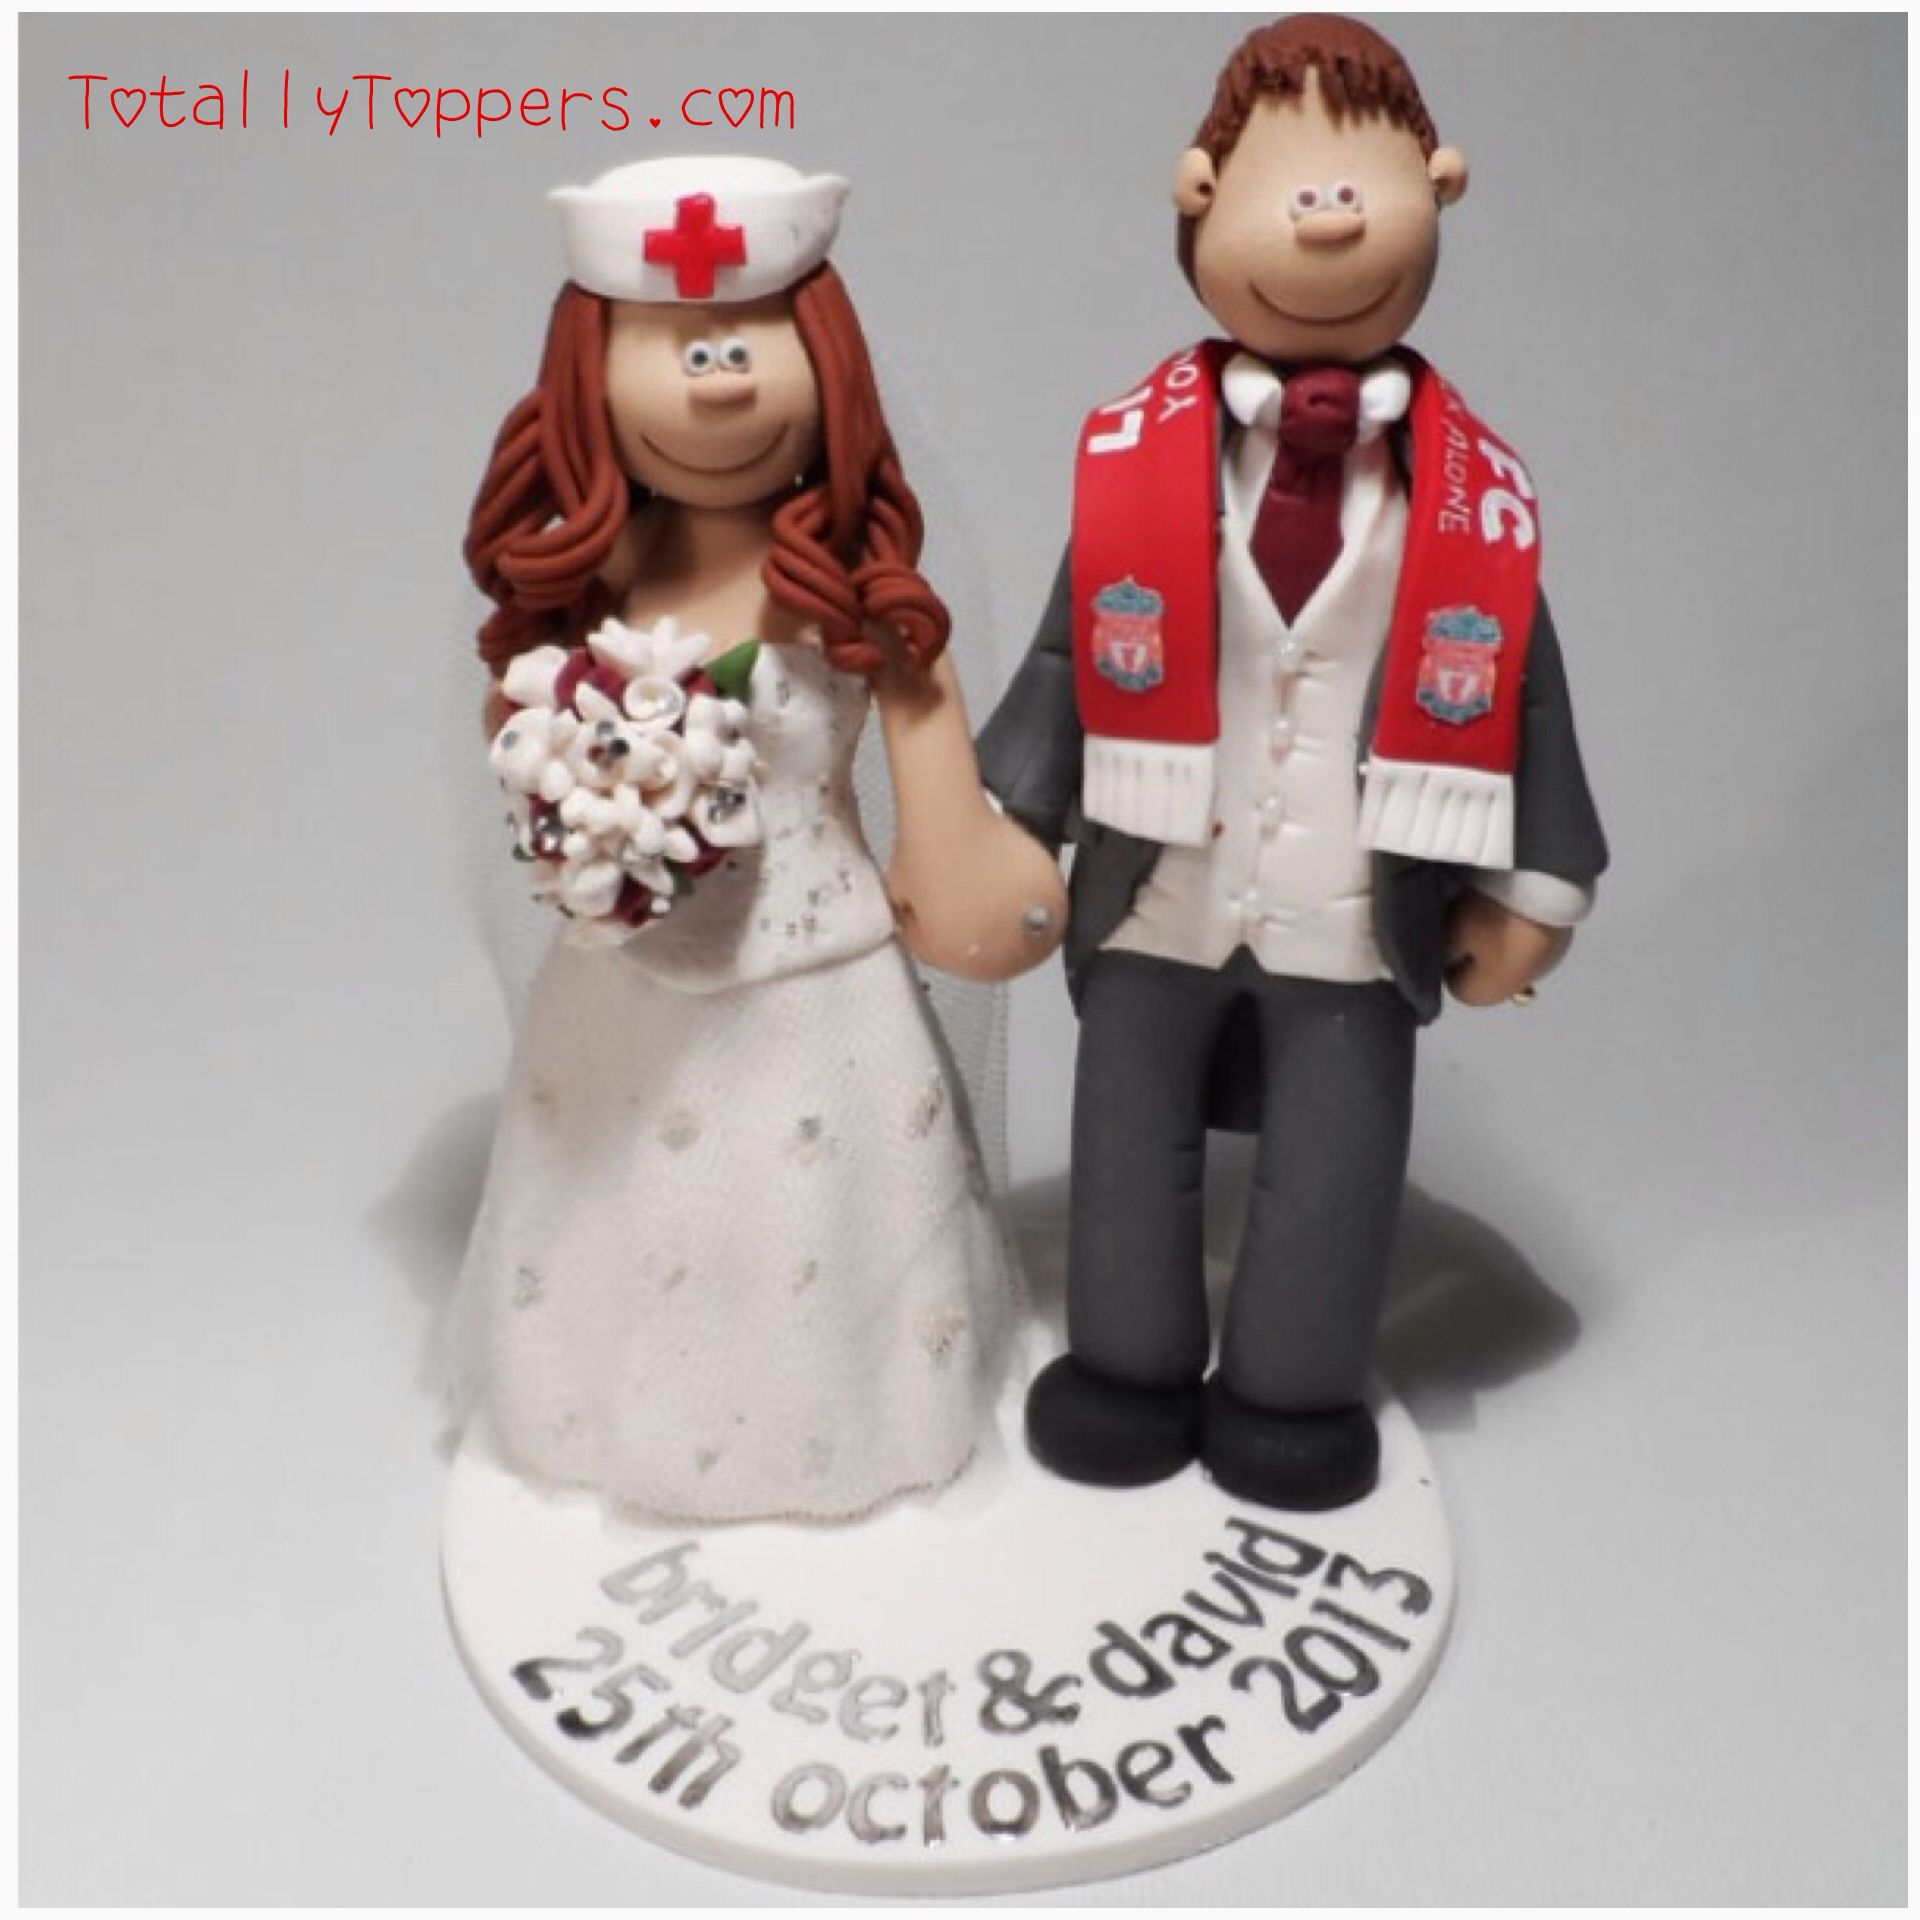 A nurse bride and liverpool football club groom wedding cake a nurse bride and liverpool football club groom wedding cake topper totallytoppers junglespirit